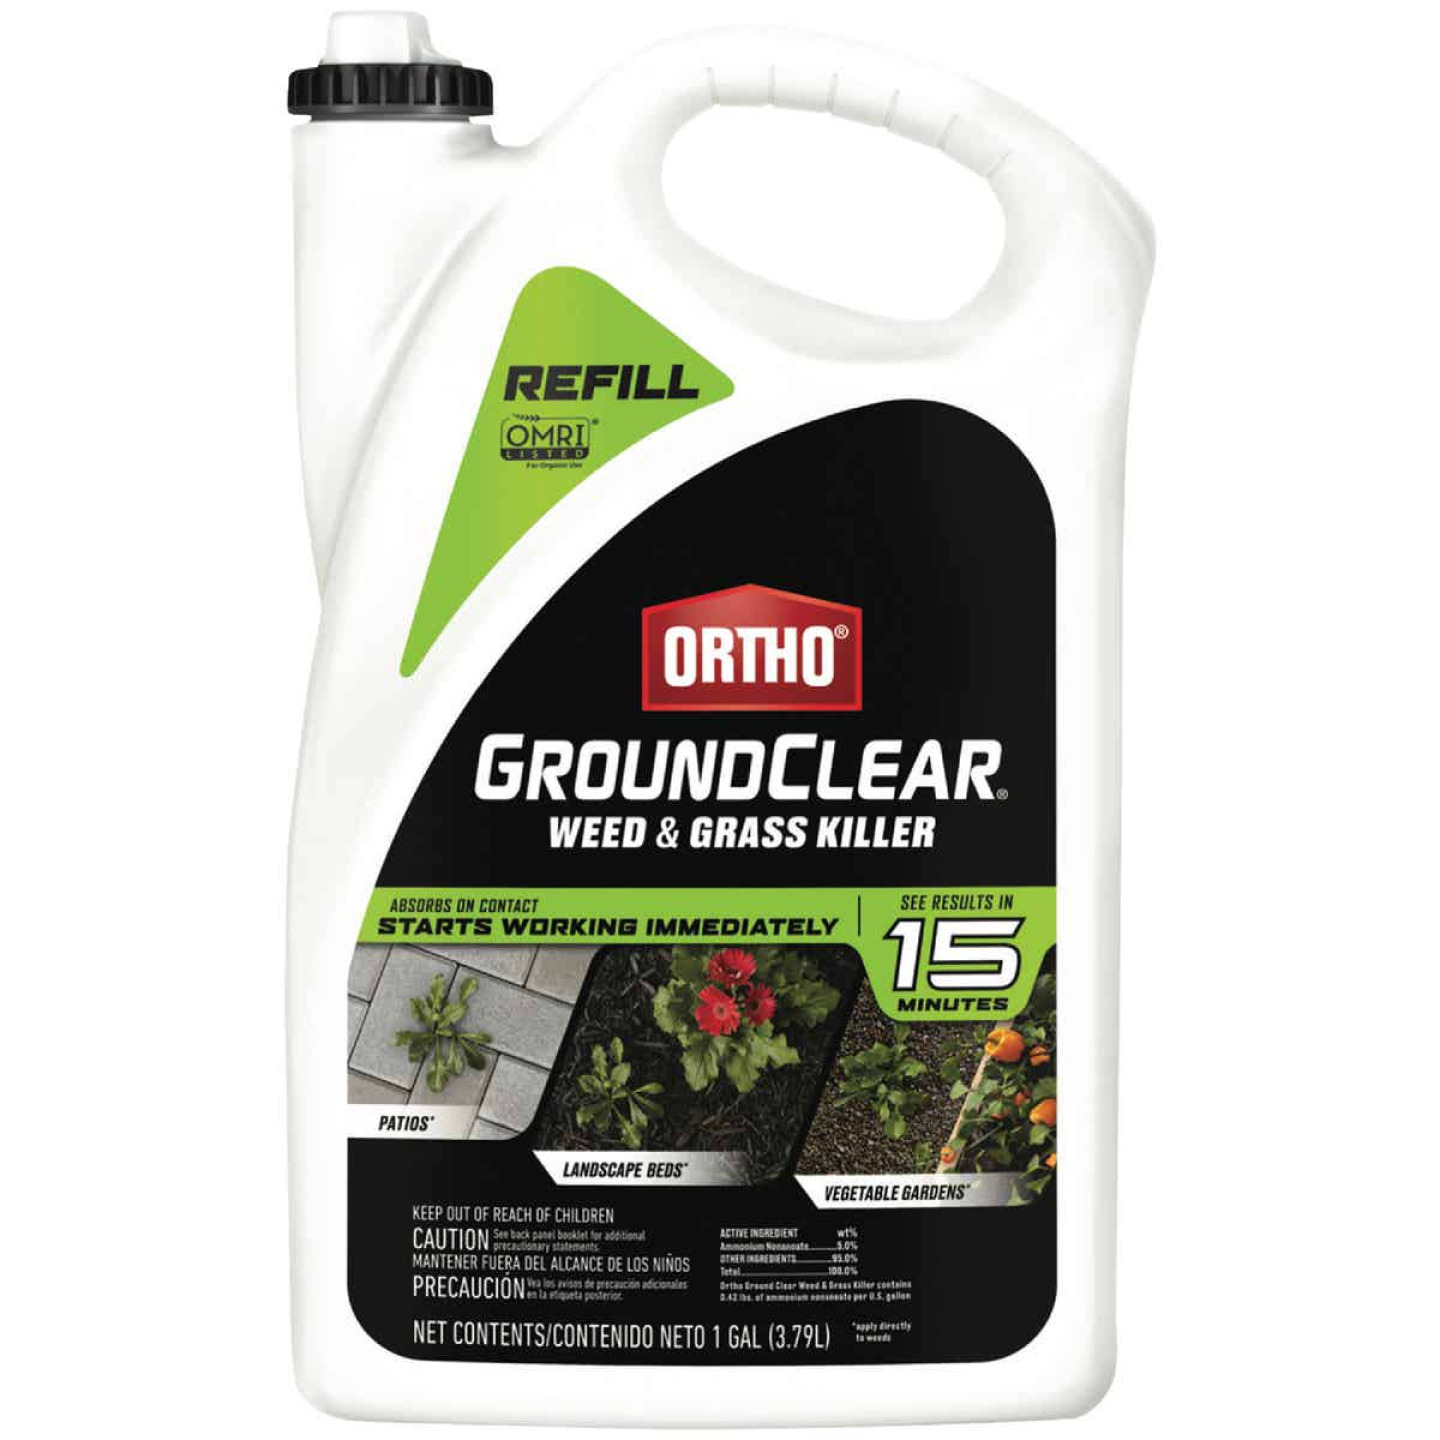 Ortho GroundClear 1 Gal. Ready To Use Refill Weed & Grass Killer Image 1